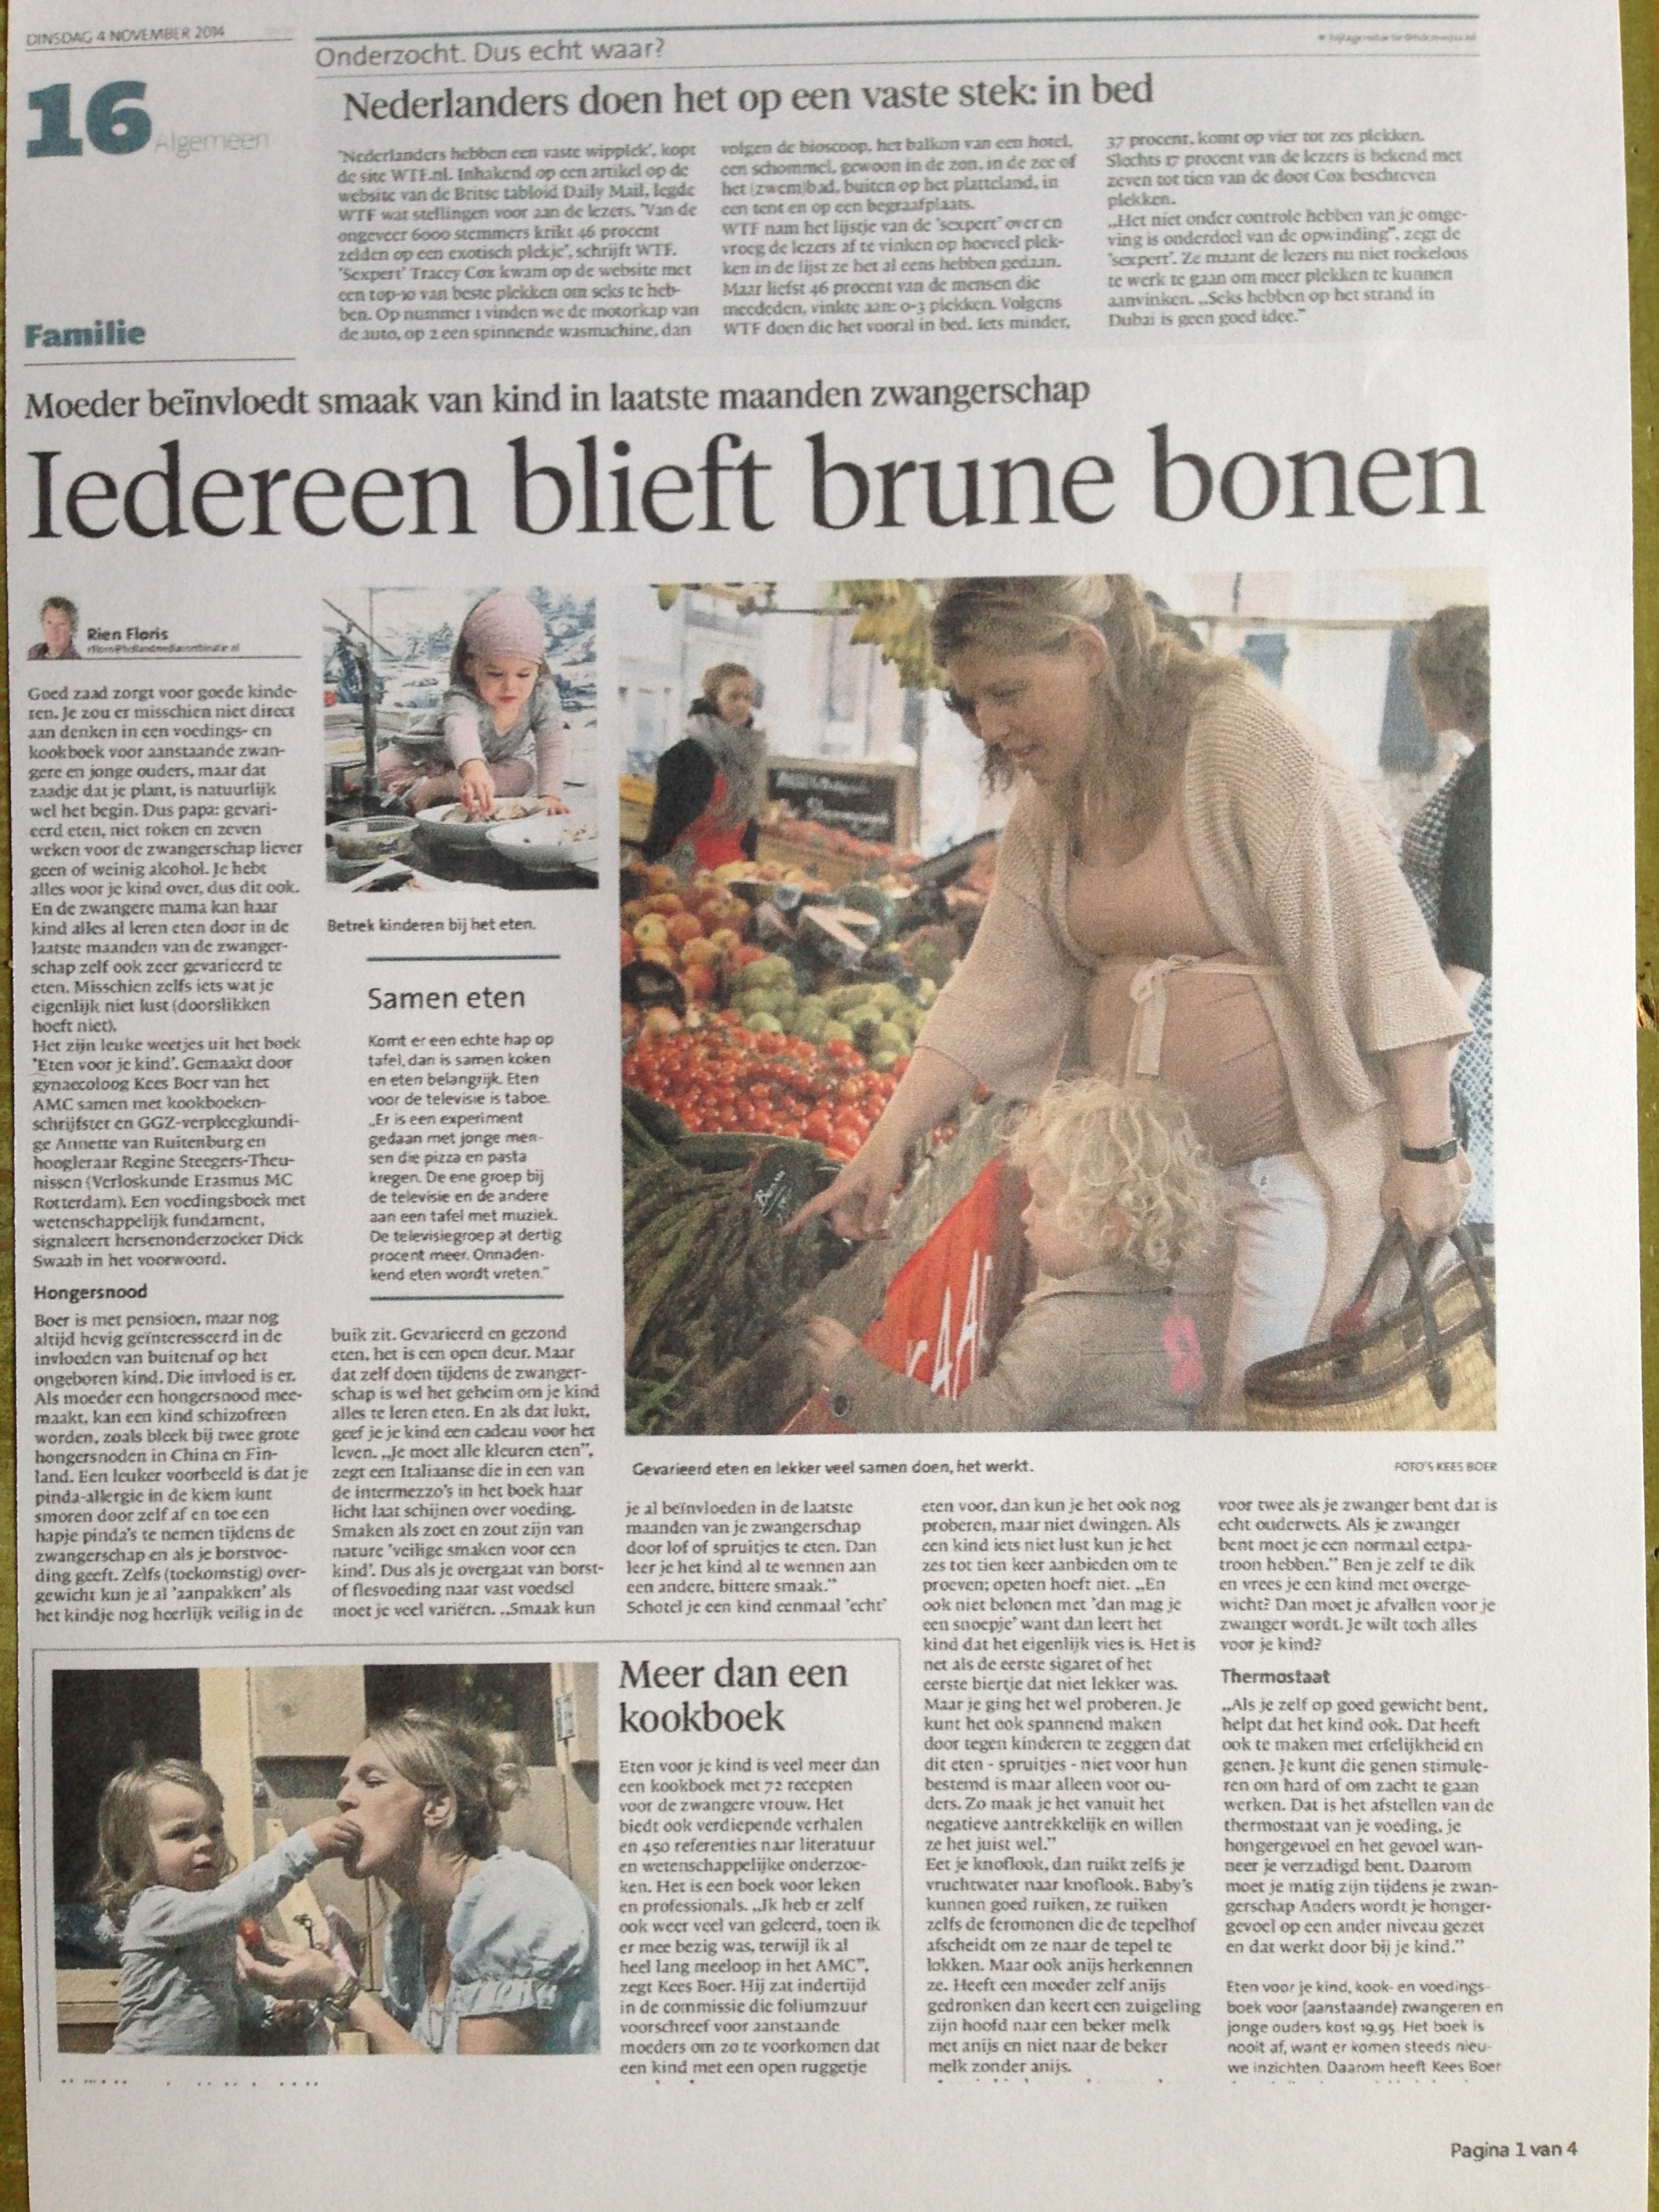 Artiikel over Eten voor je Kind in het Noord Hollands Dagblad 04-11-2013